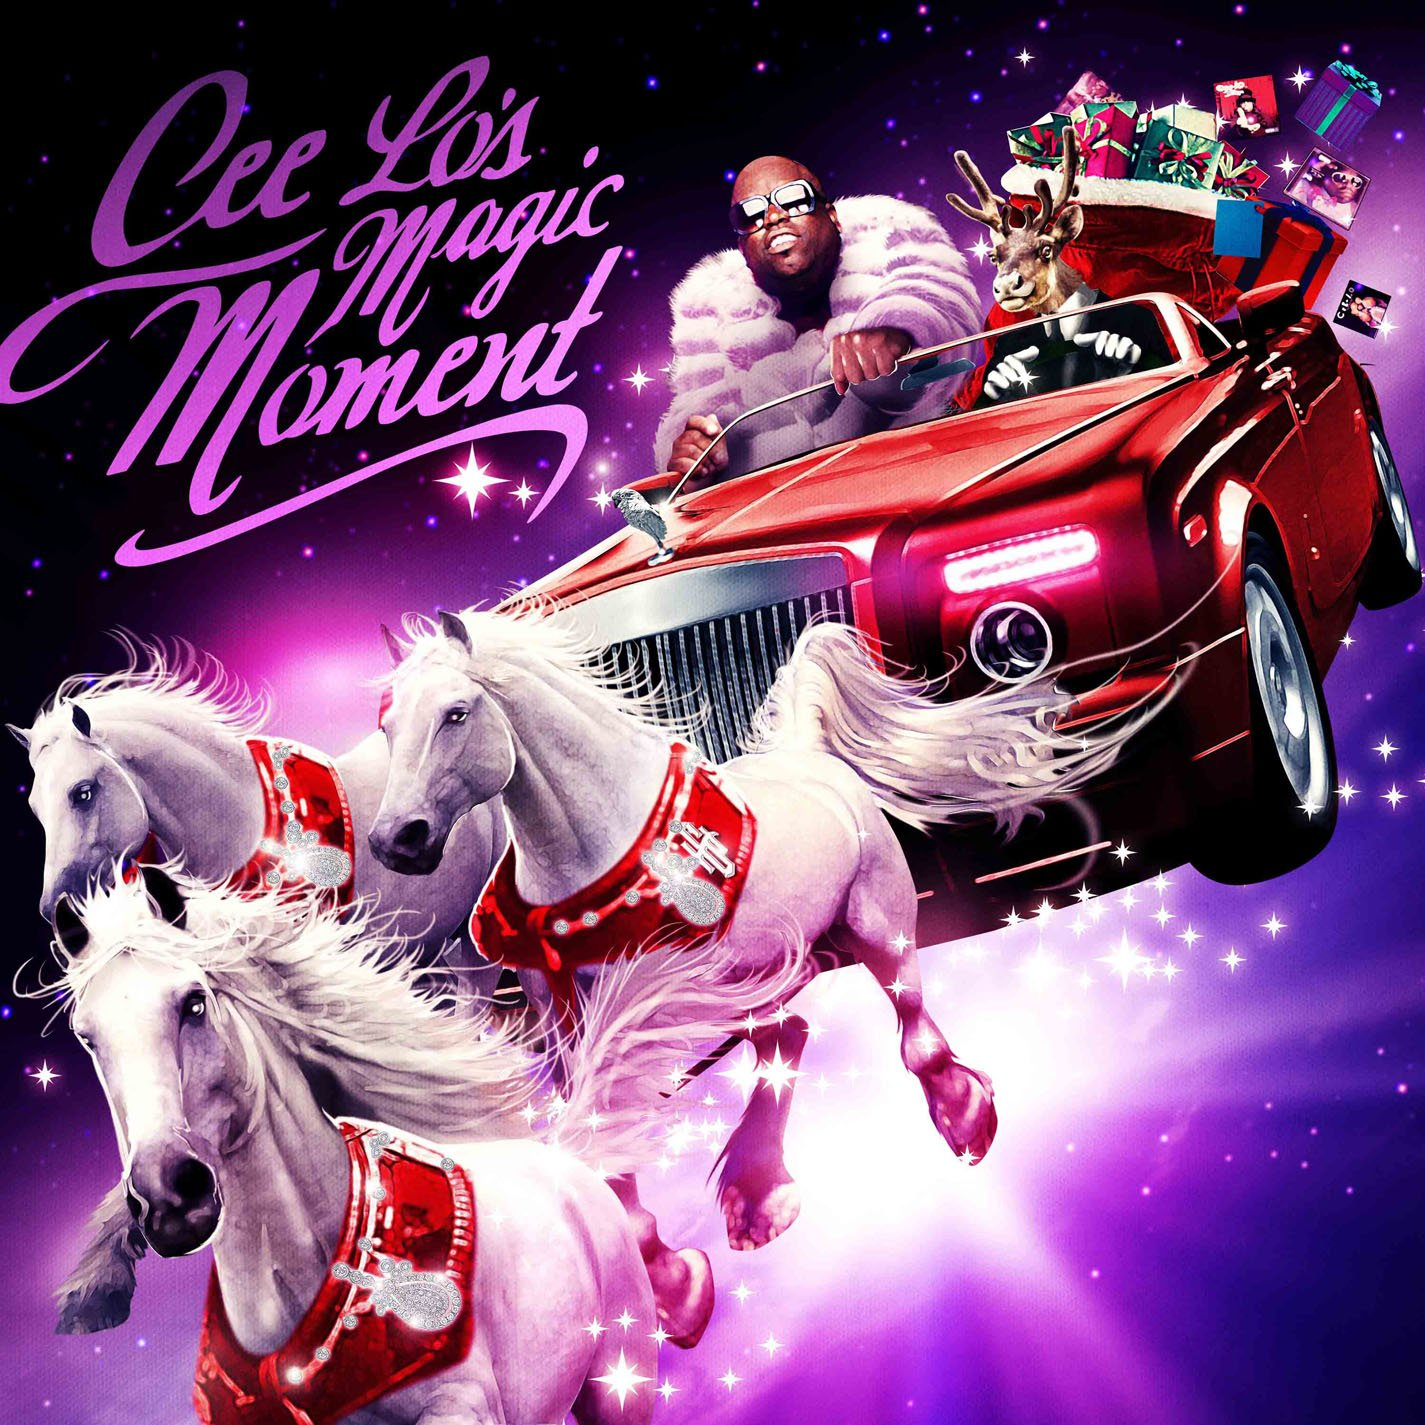 Cee Lo Green - Cee Lo's Magic Moment - Amazon.com Music